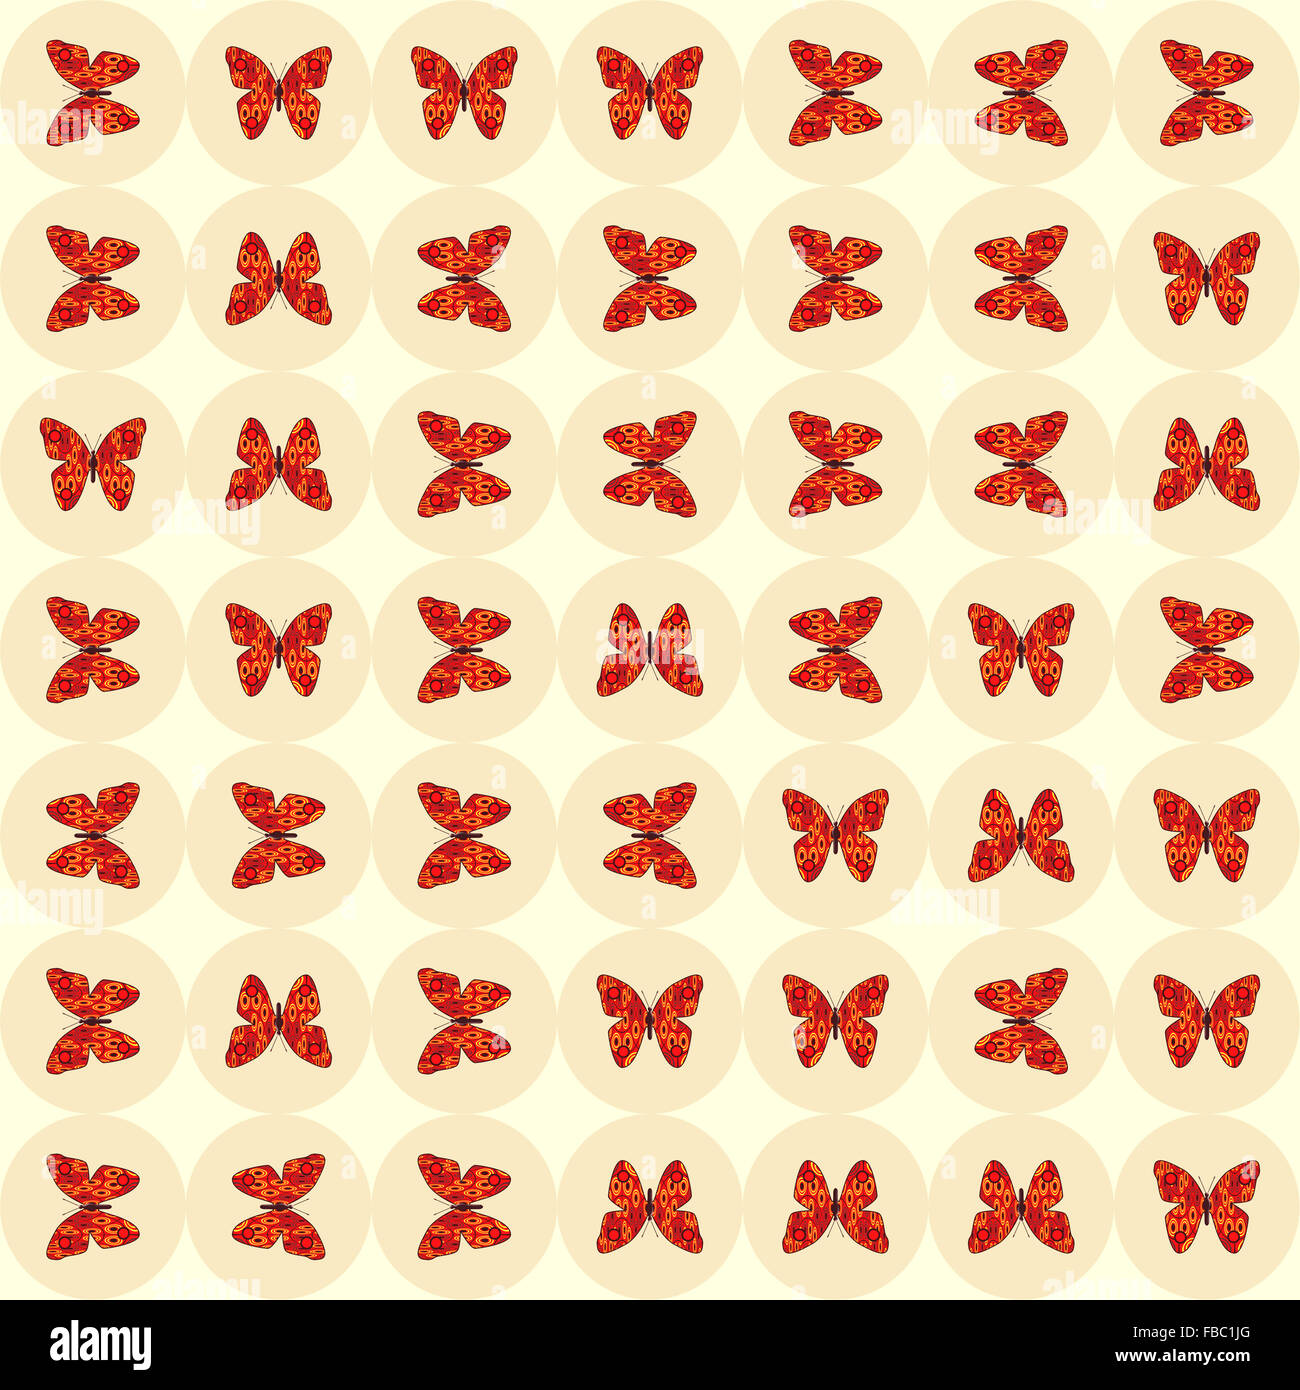 Tiled pattern of red butterflies on a light background. Digital art. - Stock Image